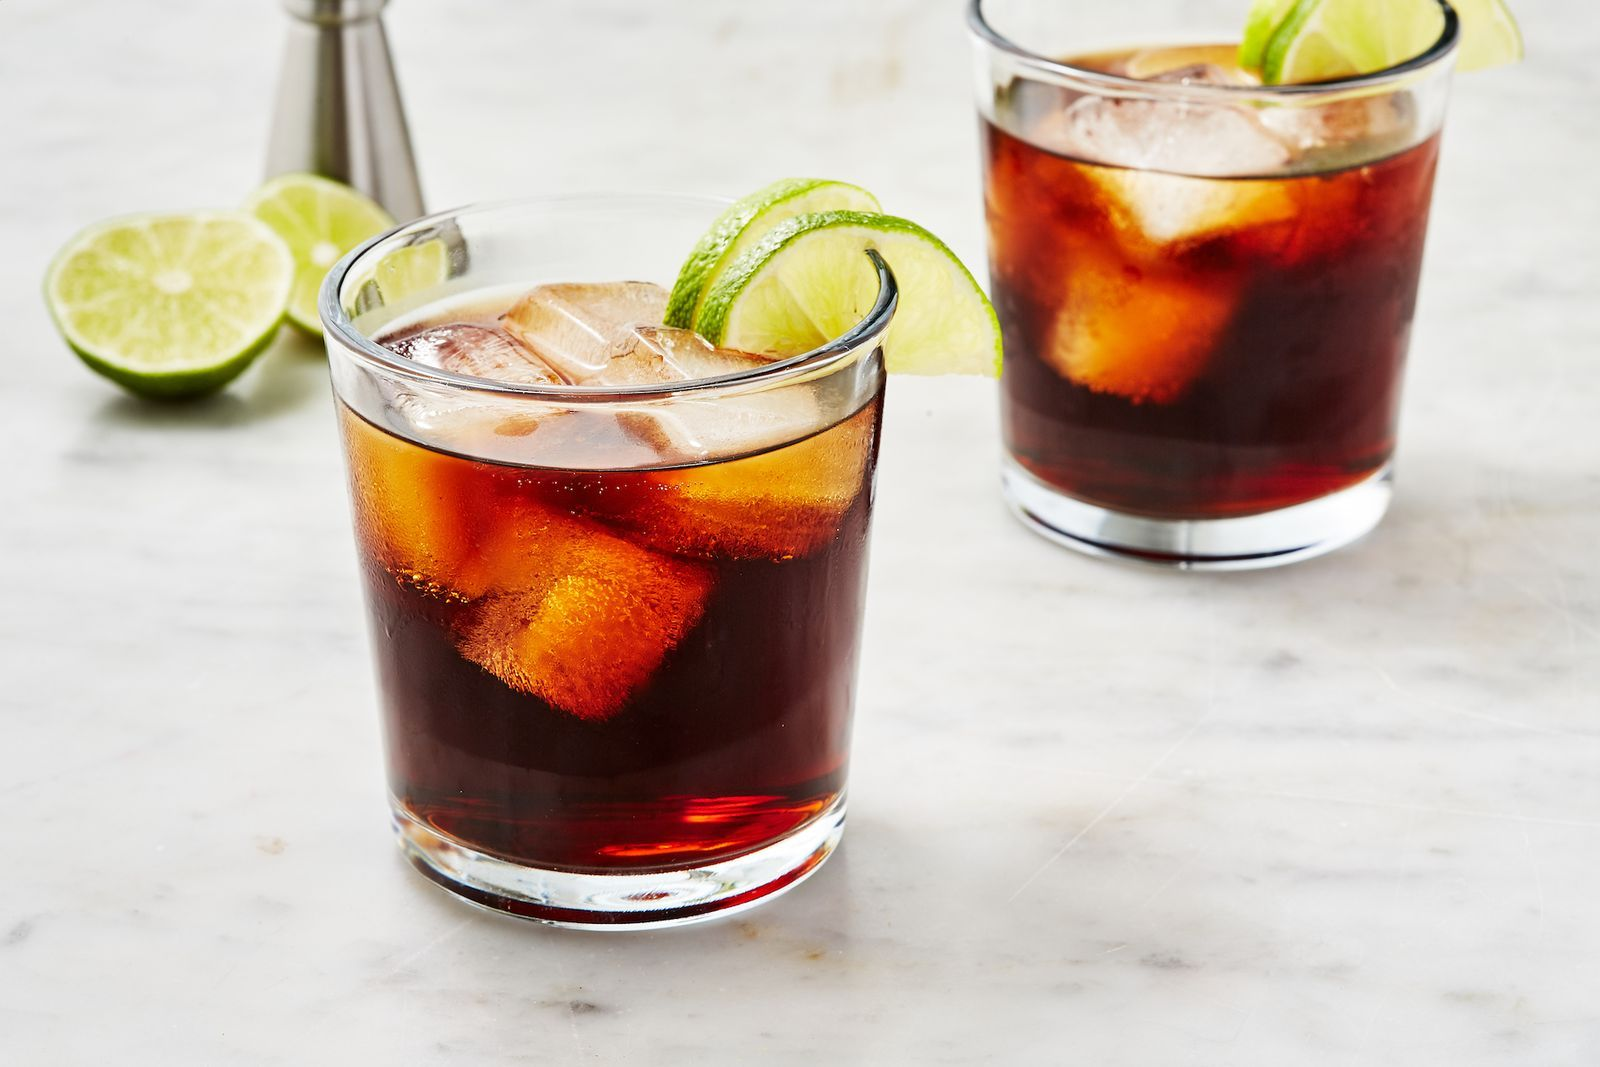 Learn This Easy Ratio For A Perfect Rum & Coke | Recipe in 2020 | Coke recipes, Delish, Best rum ...